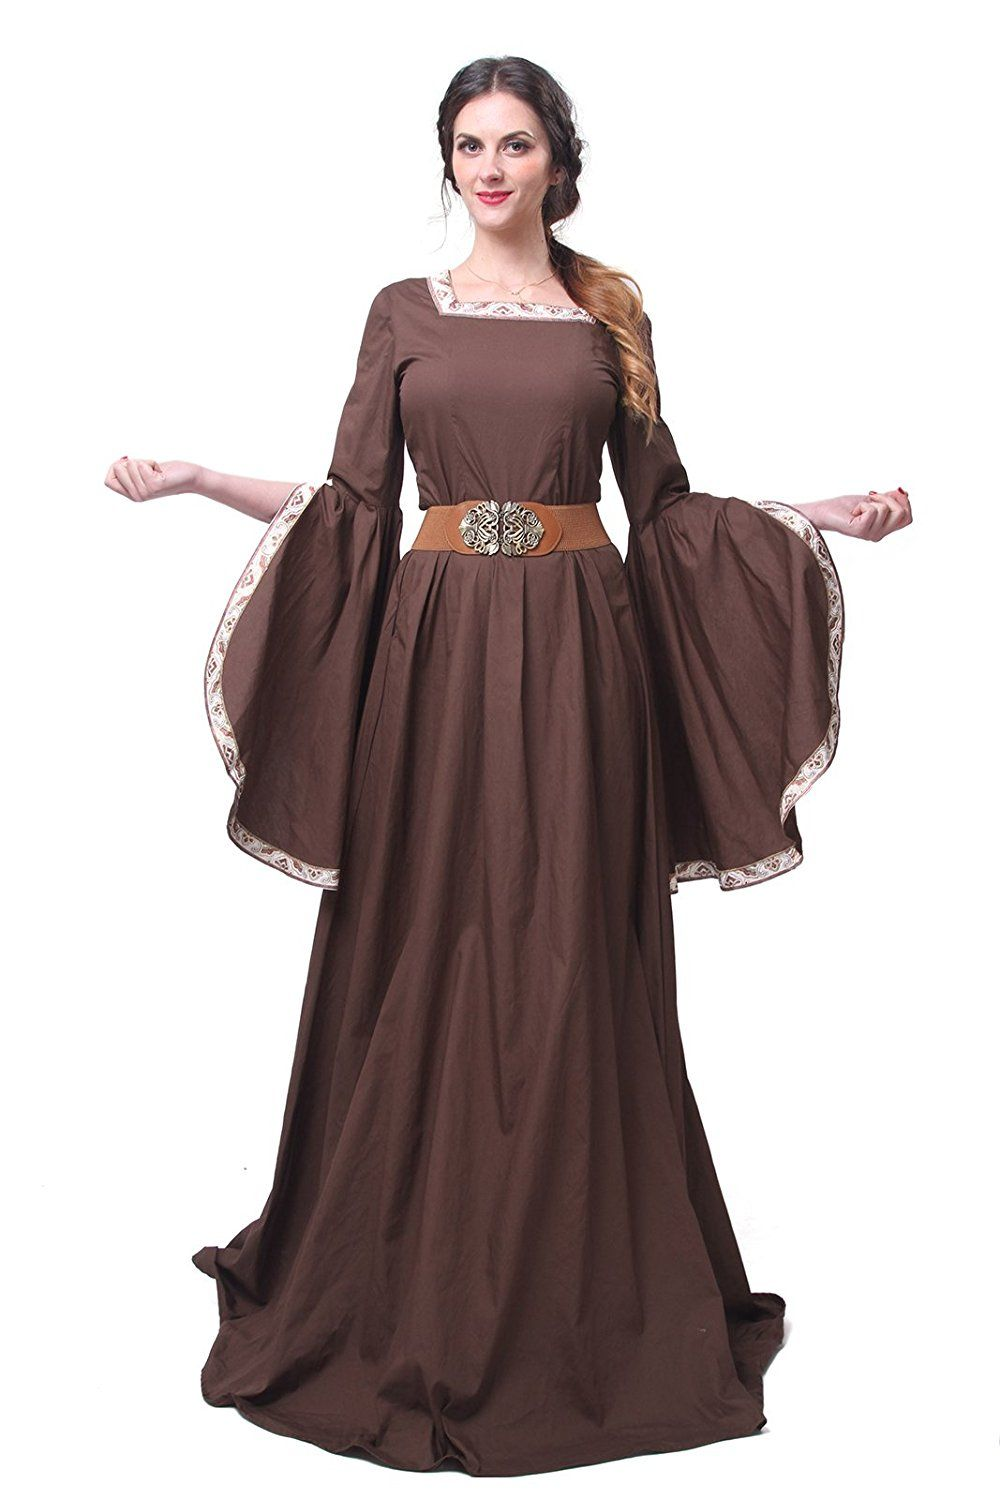 3ad9c70af52c Women's Brown Square Neck Embroidered Trim Medieval Belted Palace Dress  Costume - DeluxeAdultCostumes.com